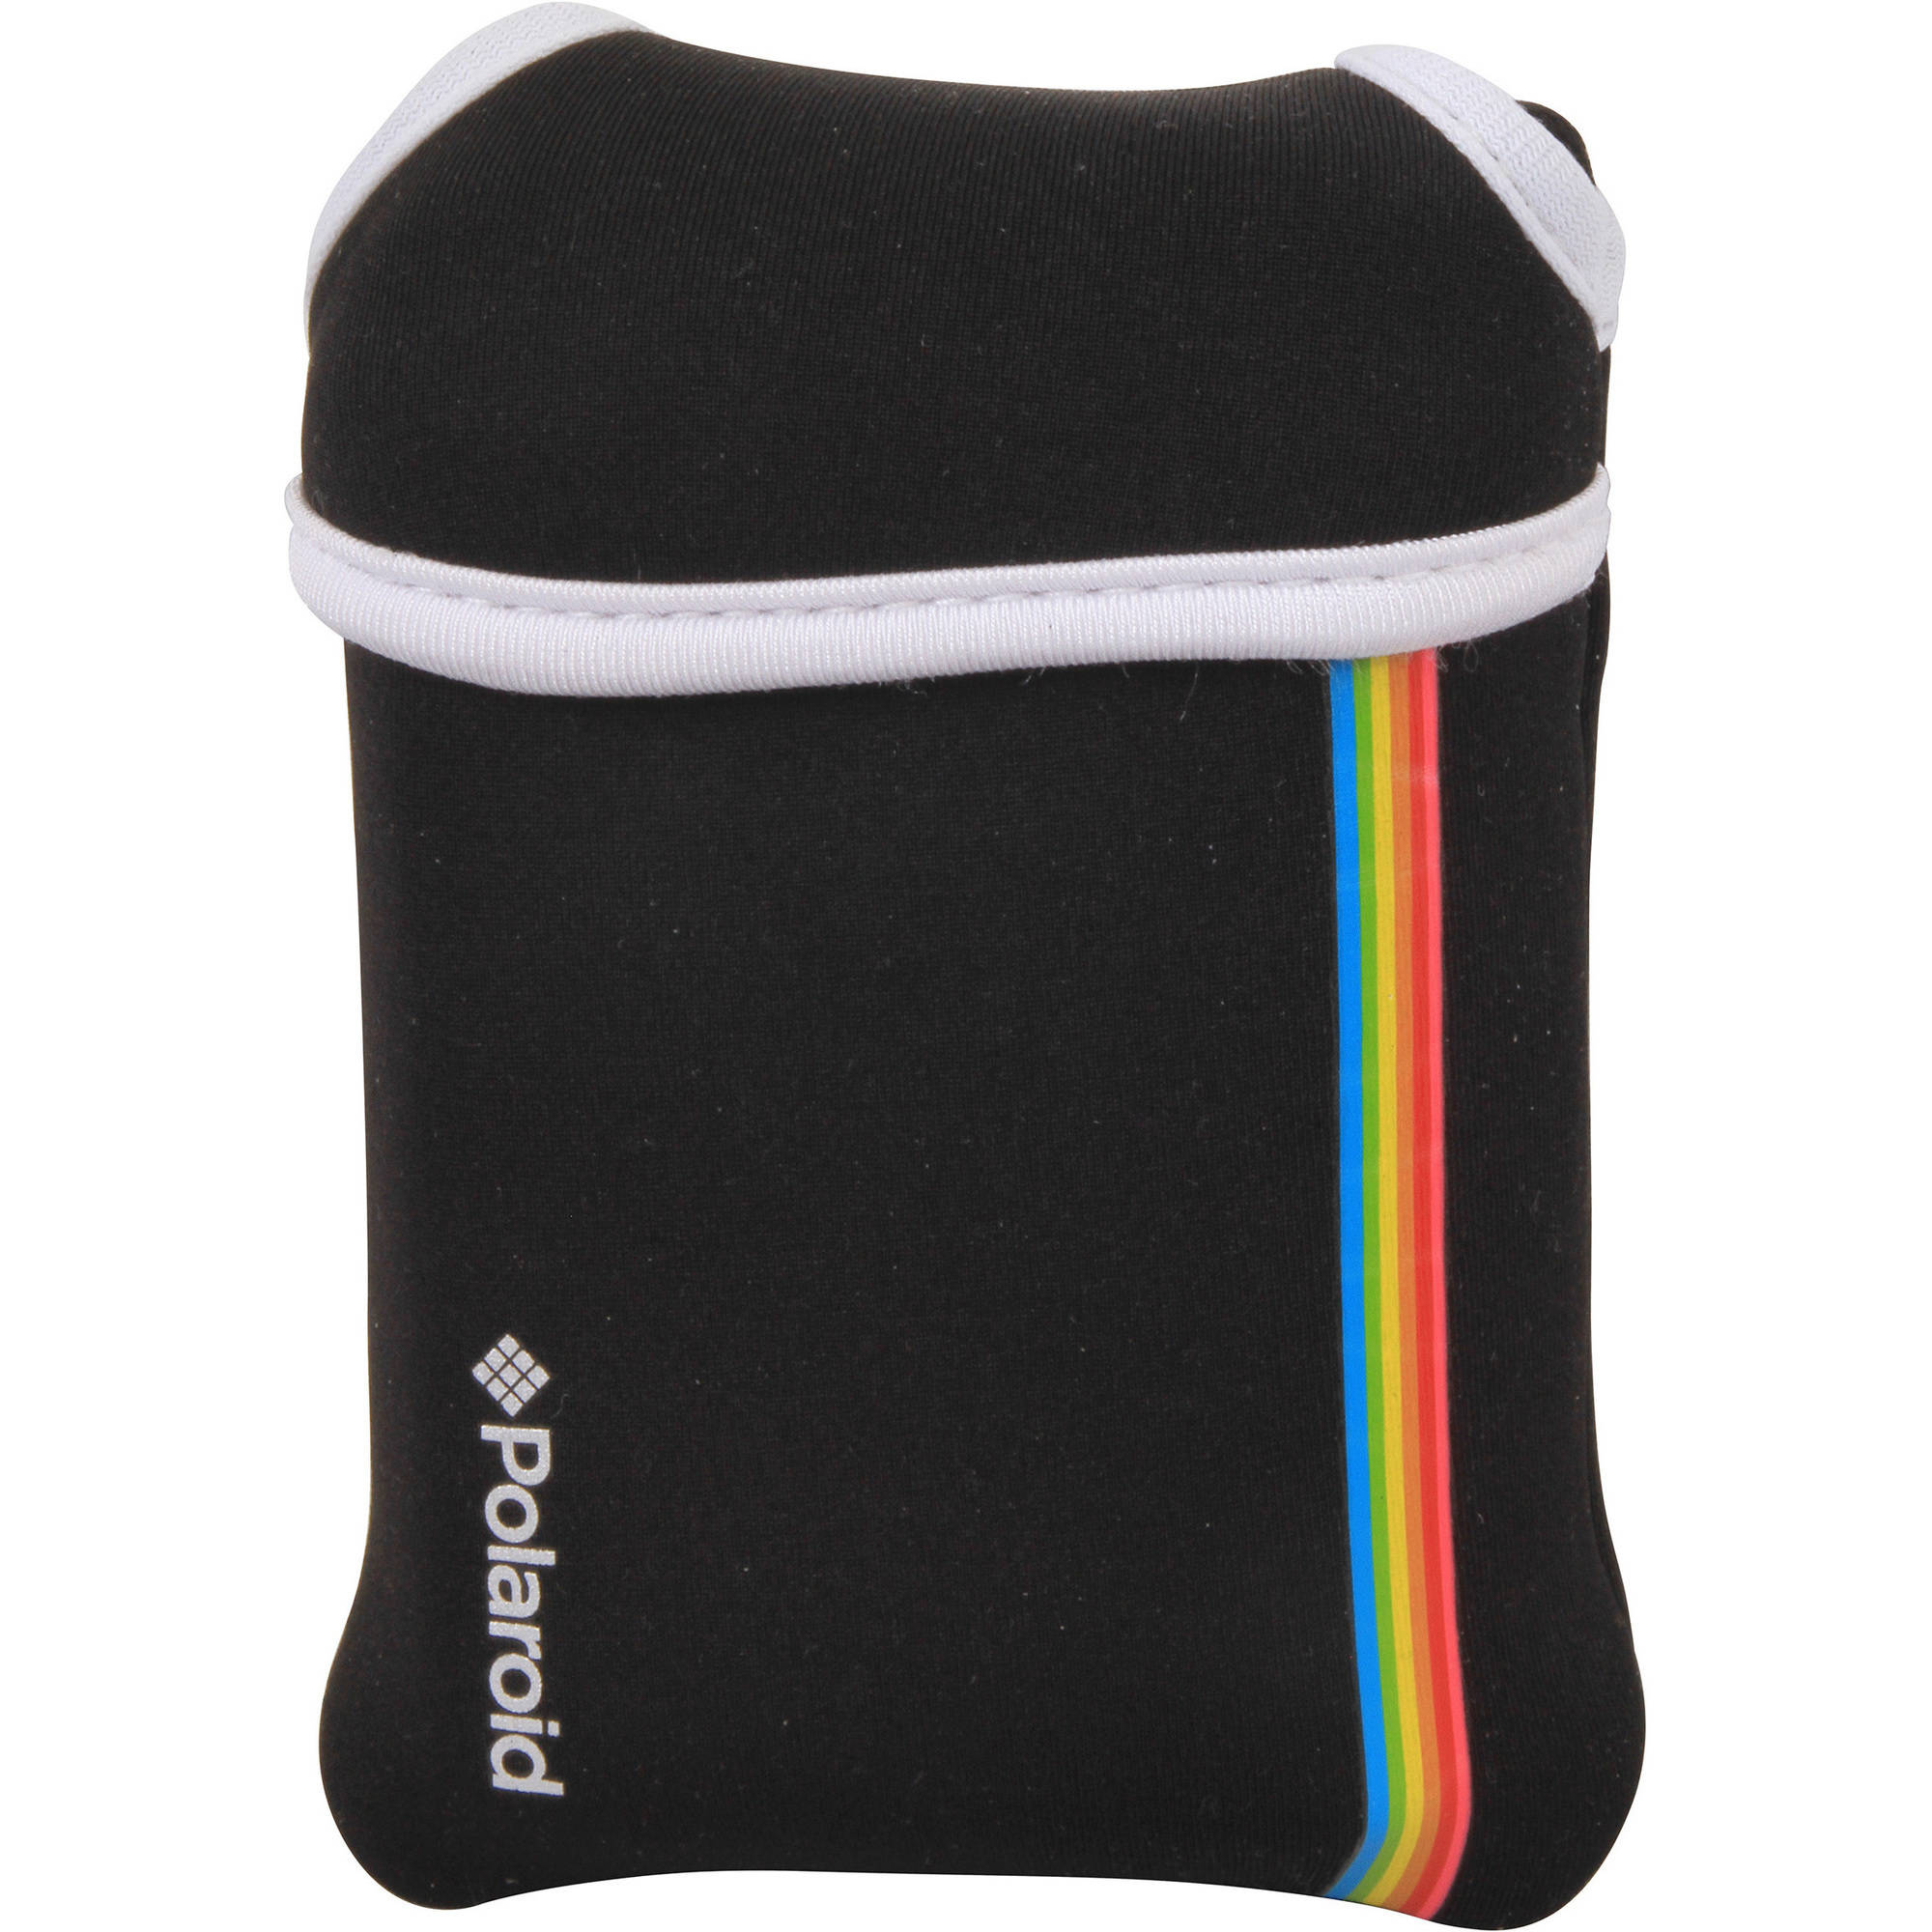 Polaroid Snap EVA Case, Black